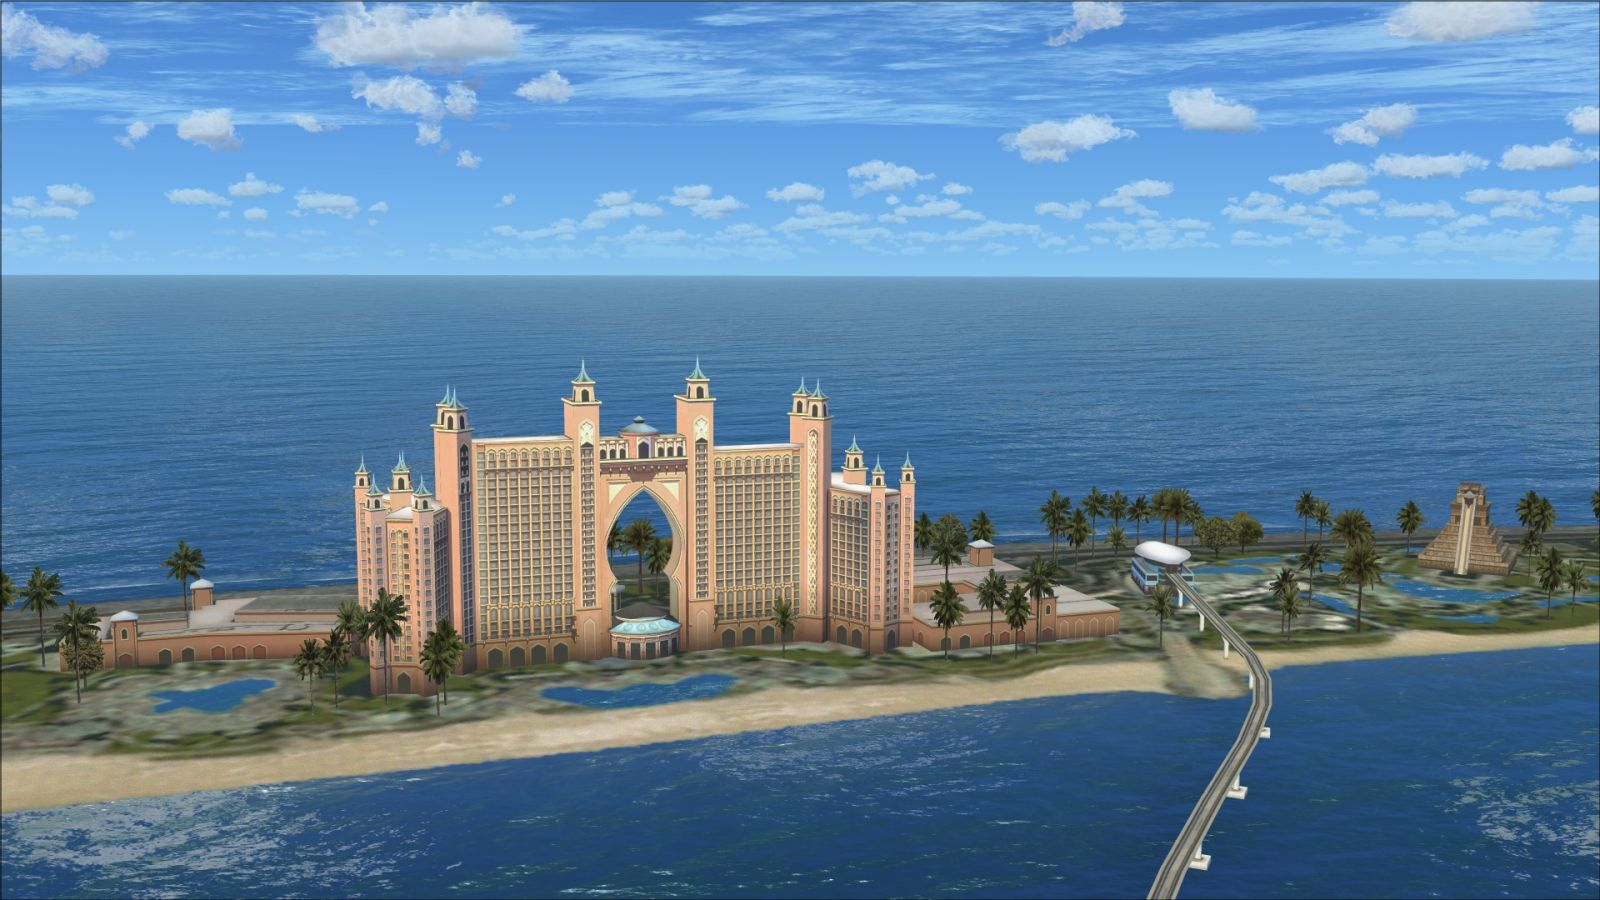 Atlantis-The-Palm-Hotel.jpg